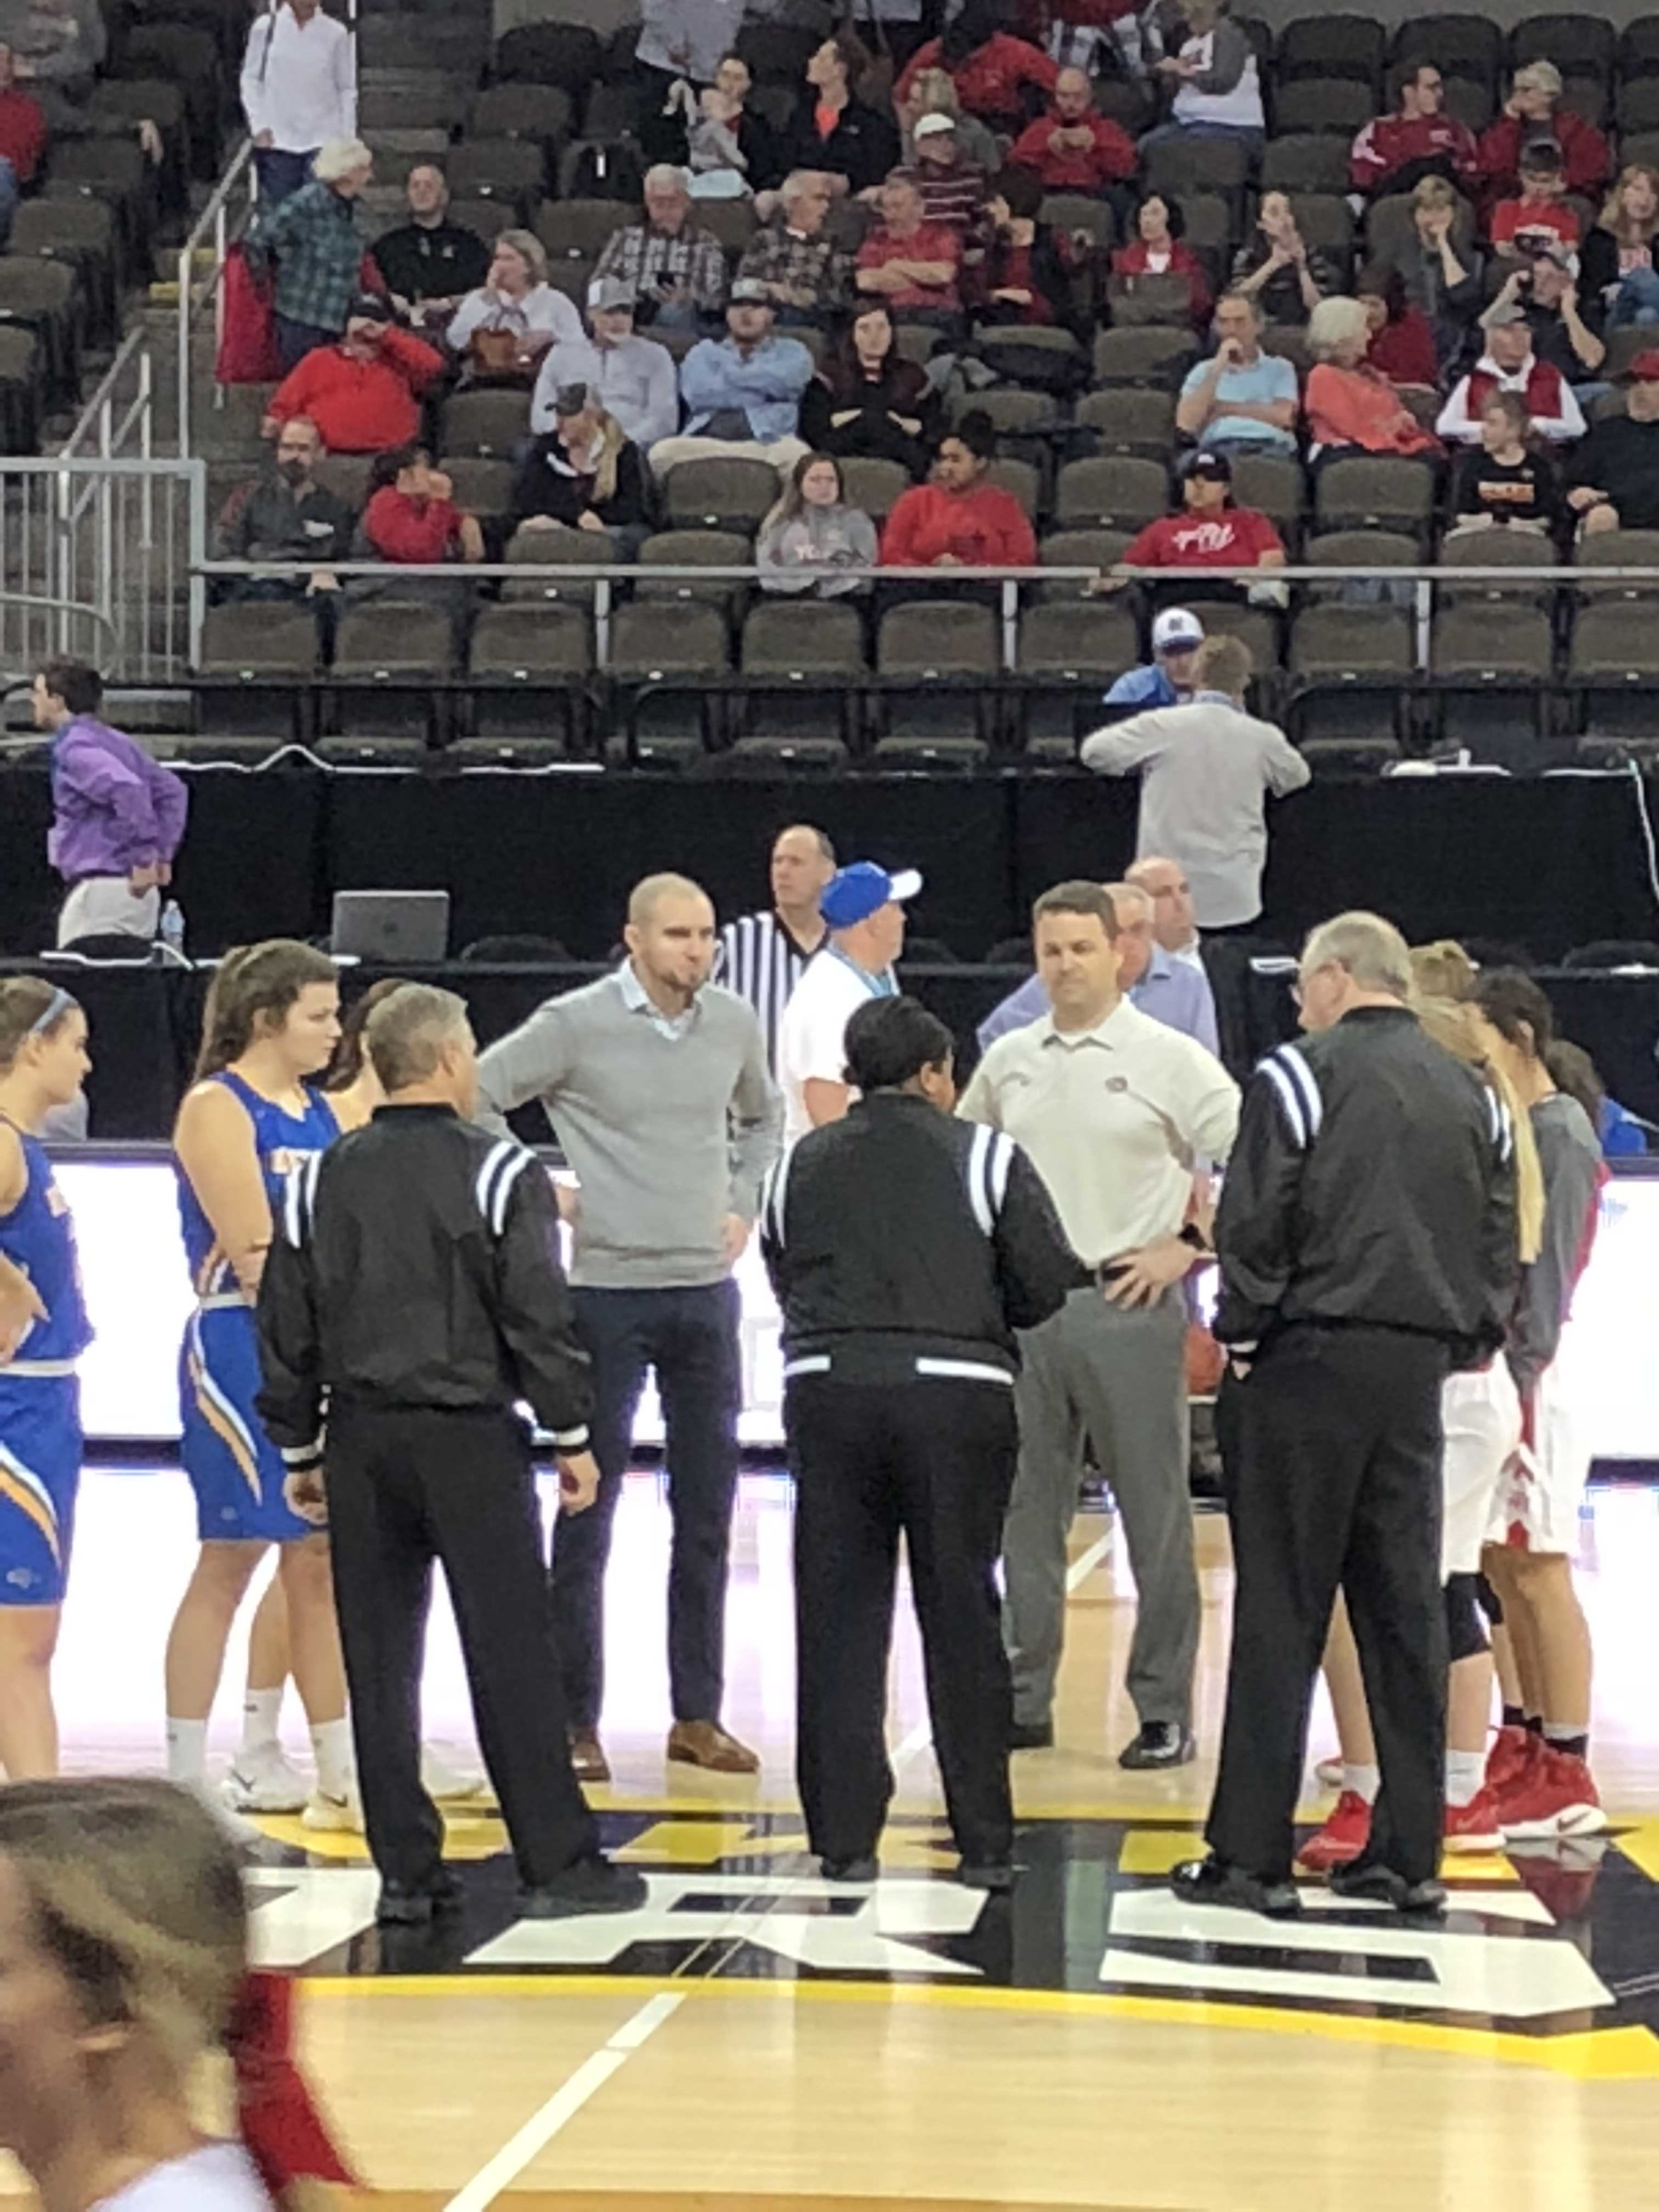 In 2014, Coach Stoll was named Cincinnati Enquirer and Greater Cincinnati Coach of the Year. In 2015 and 2016, he was recognized as Division II Coach of the Year. He was named 9th Region Coach of the Year in 2016.